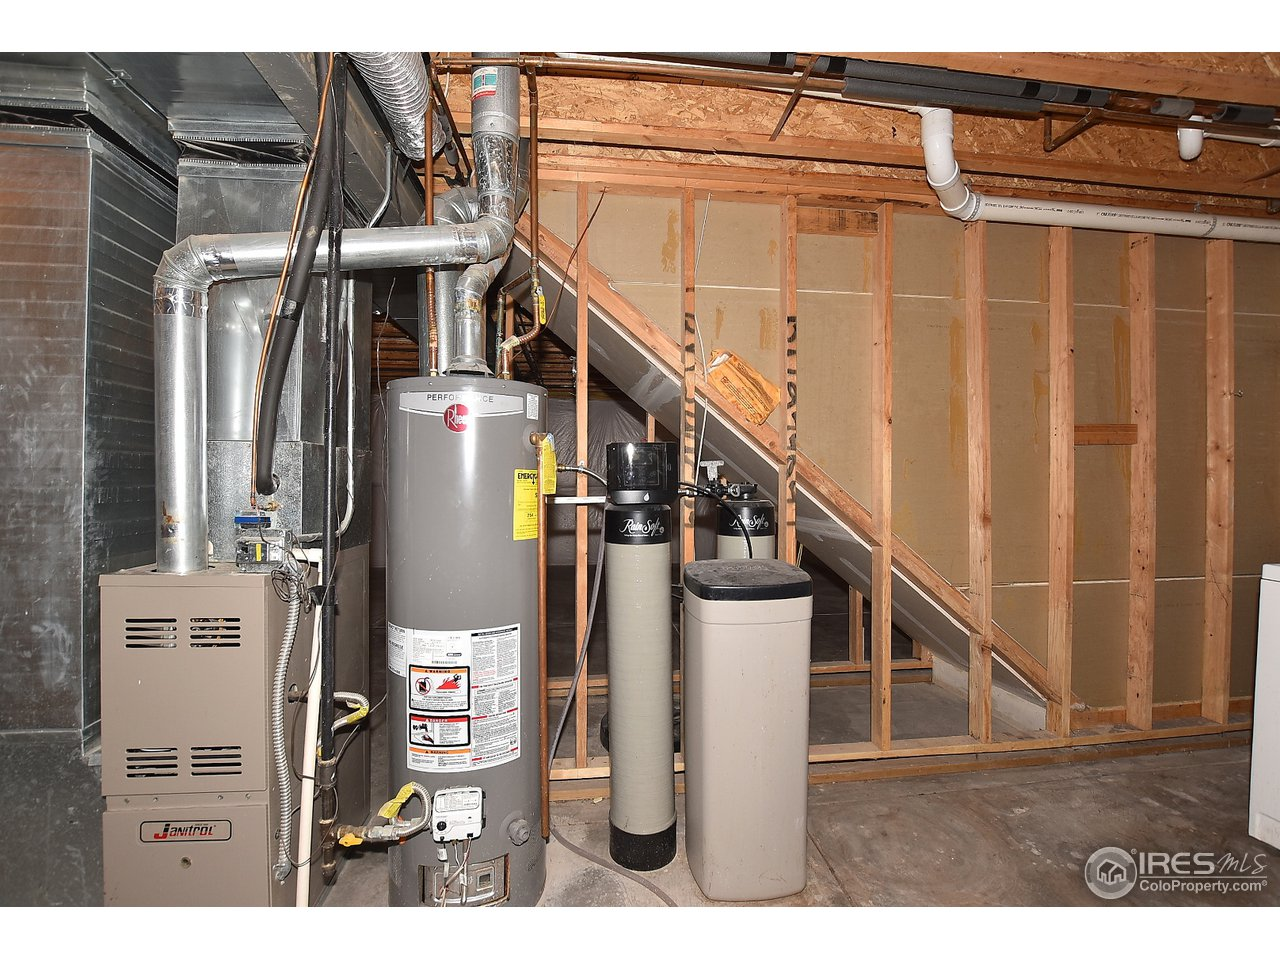 Furnace, A/C, New water filter